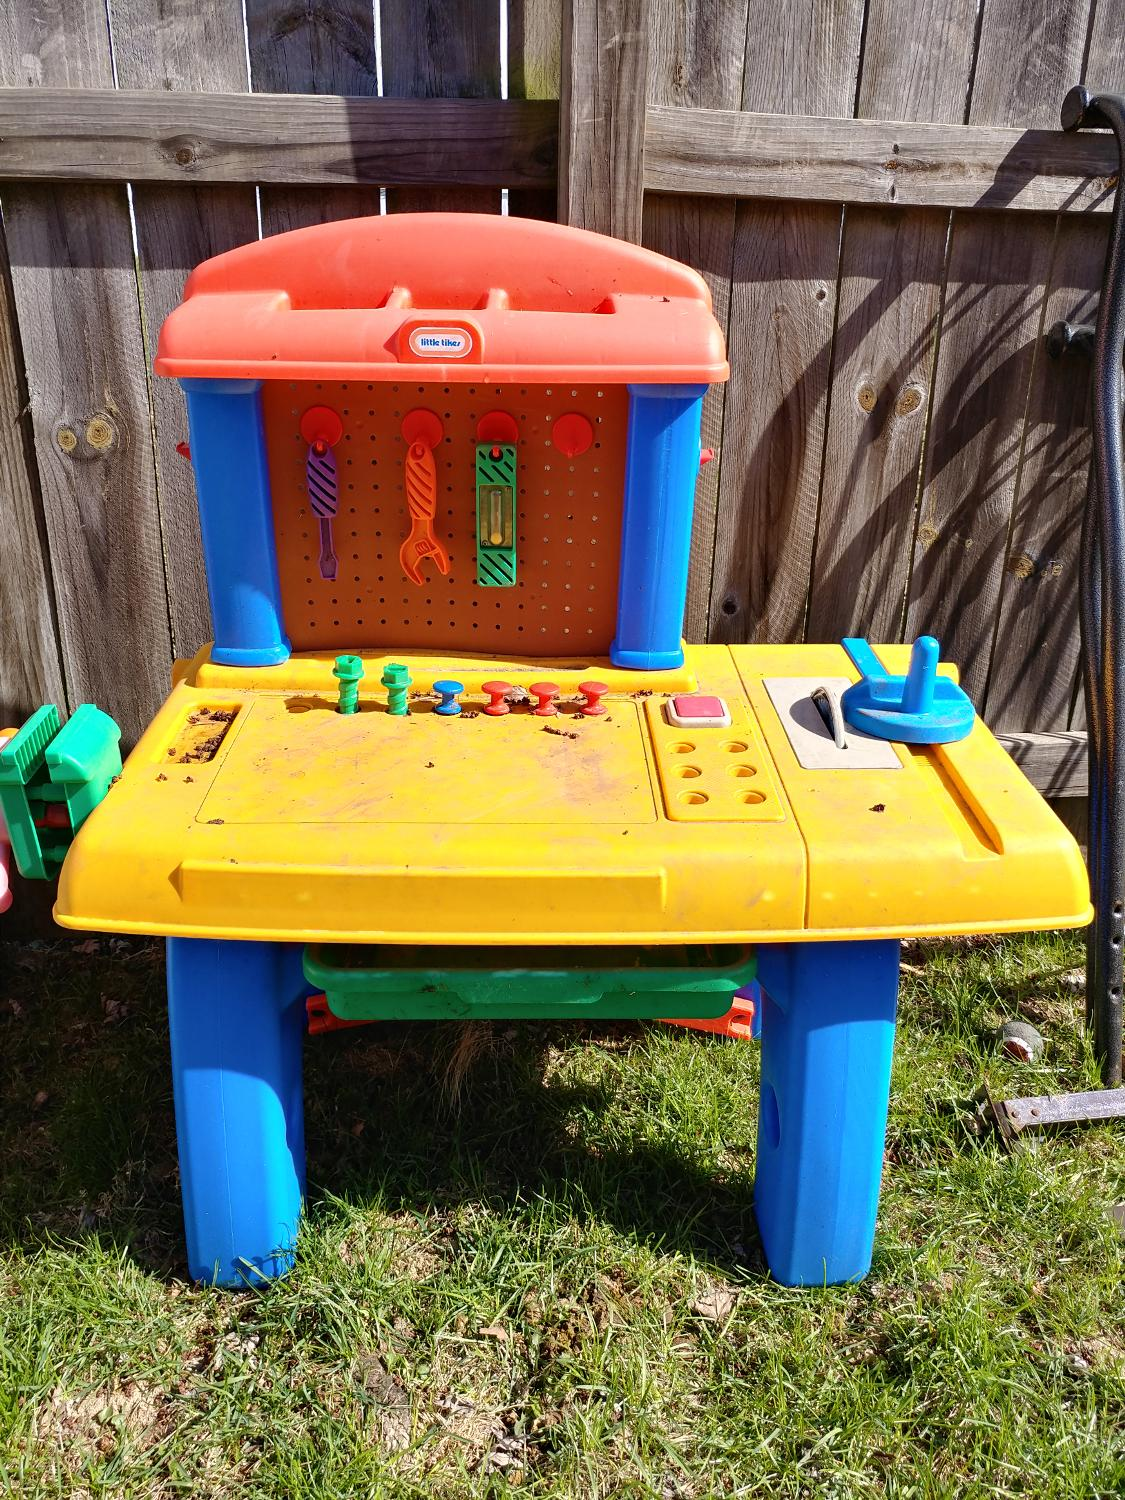 Find More Little Tikes Work Bench For Sale At Up To 90 Off Peoria Il